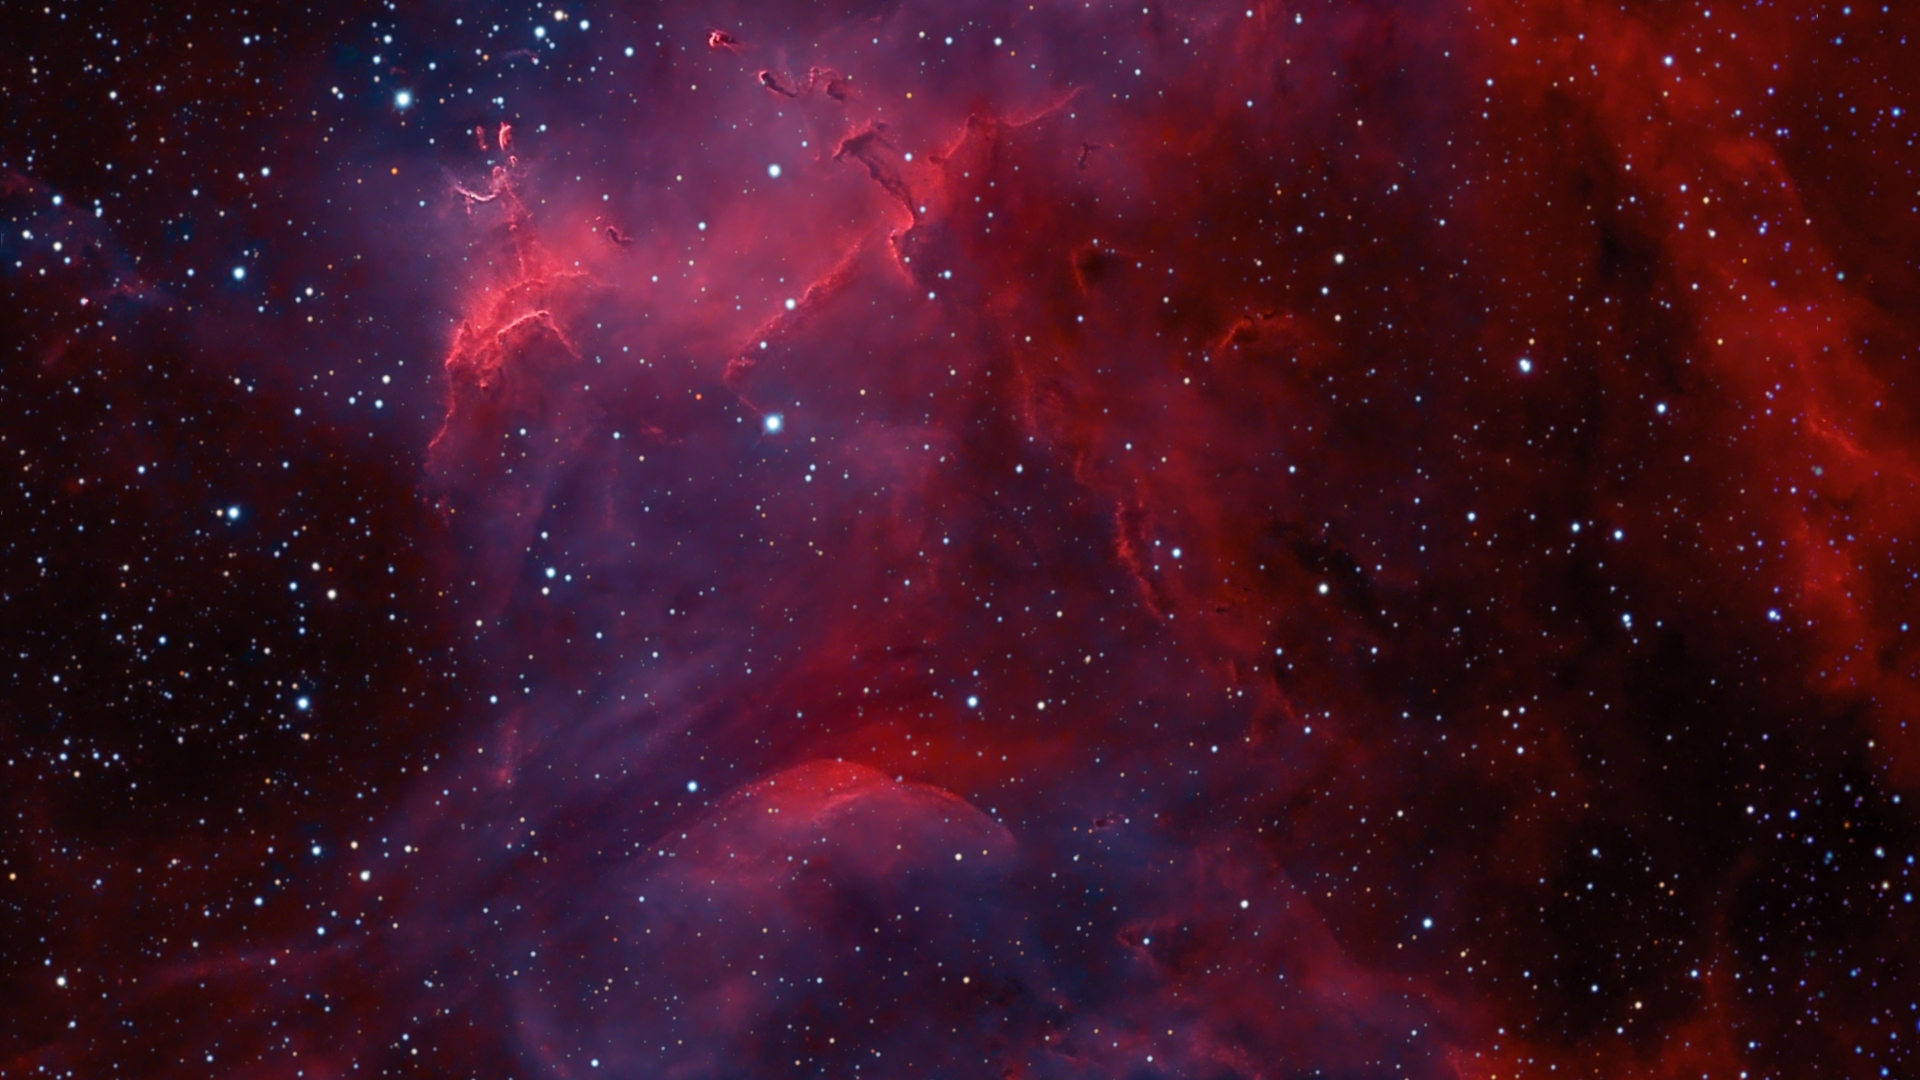 1920x1080 4k Nebula And Stars 1080p Laptop Full Hd Wallpaper Hd Space 4k Wallpapers Images Photos And Background